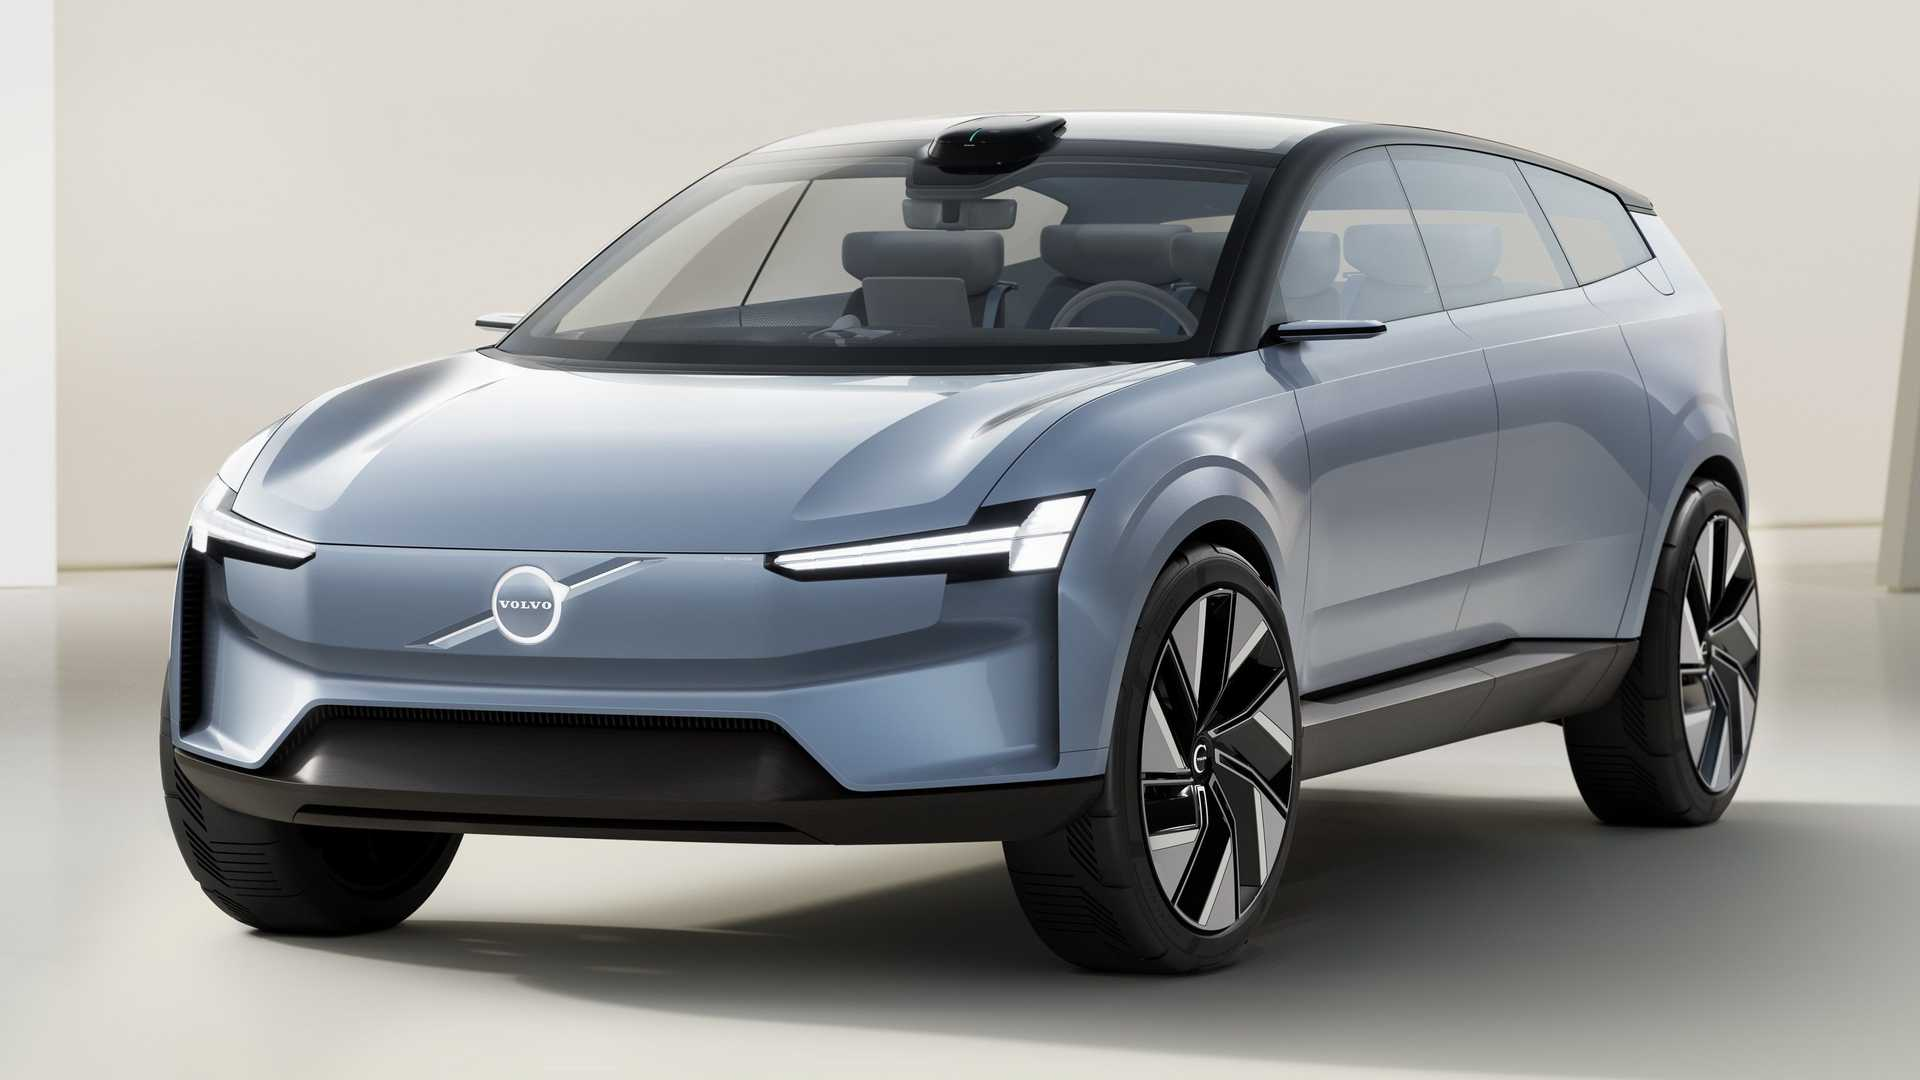 https://cdn.motor1.com/images/mgl/4JBYM/s6/volvo-concept-recharge-exterior-front-view.jpg